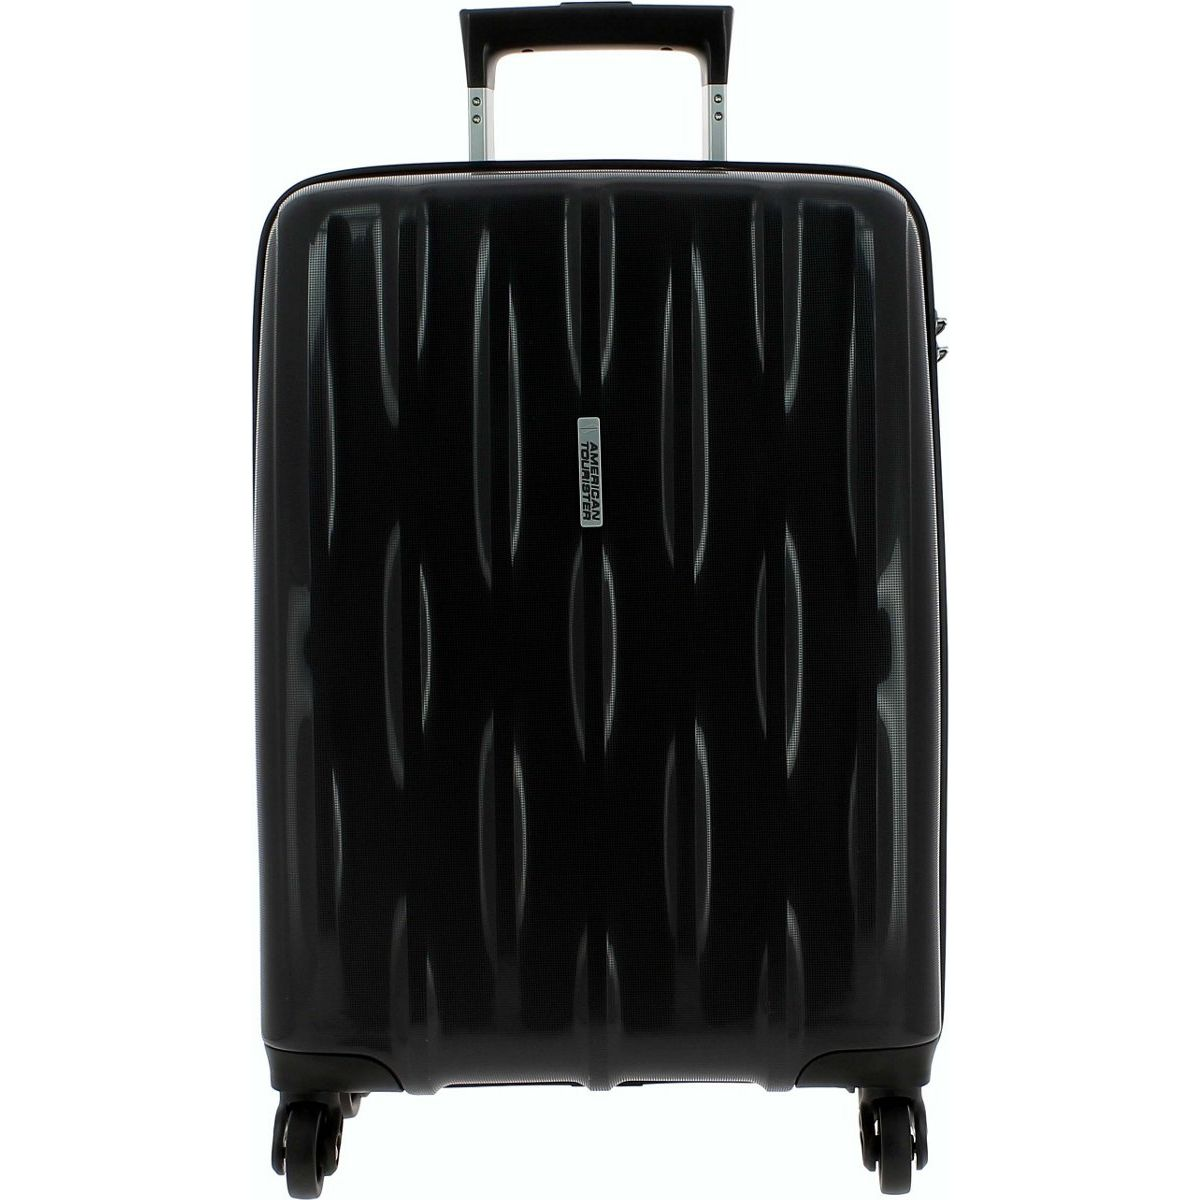 Valise cabine waverider spinner 55/20 American Tourister